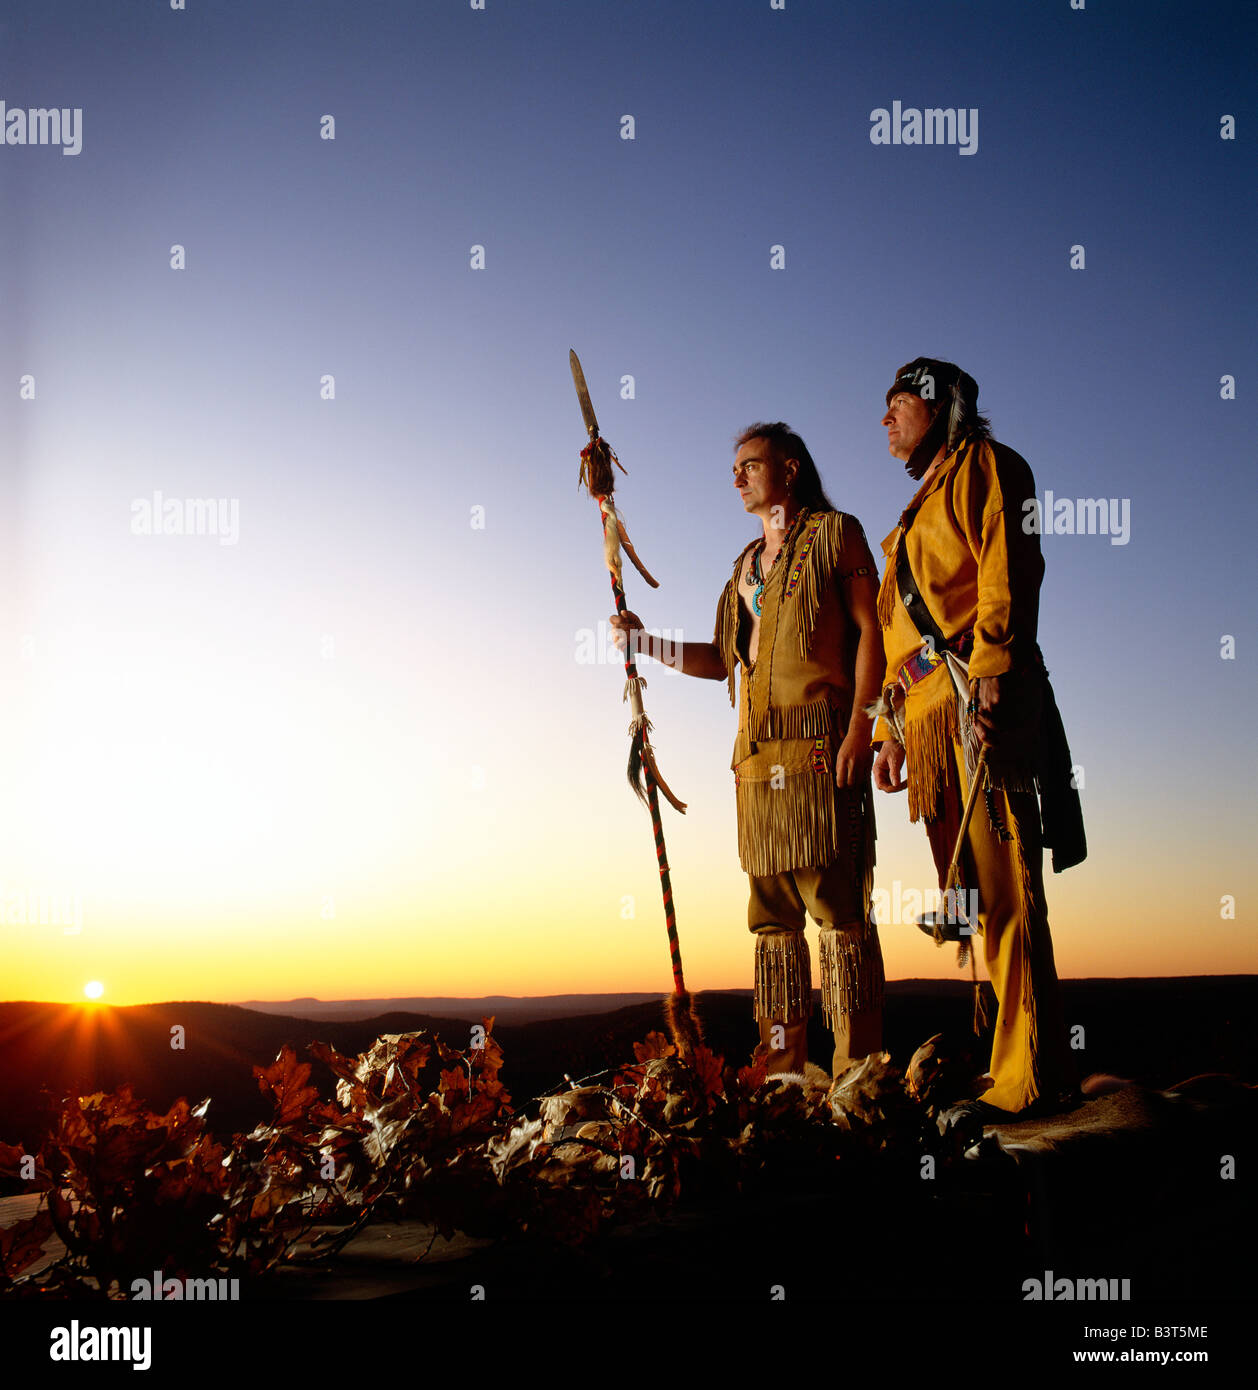 NATIVE AMERICAN SHAWNEE INDIANS AT SUNSET, HIGH KNOB NATURAL AREA, PENNSYLVANIA, USA - Stock Image